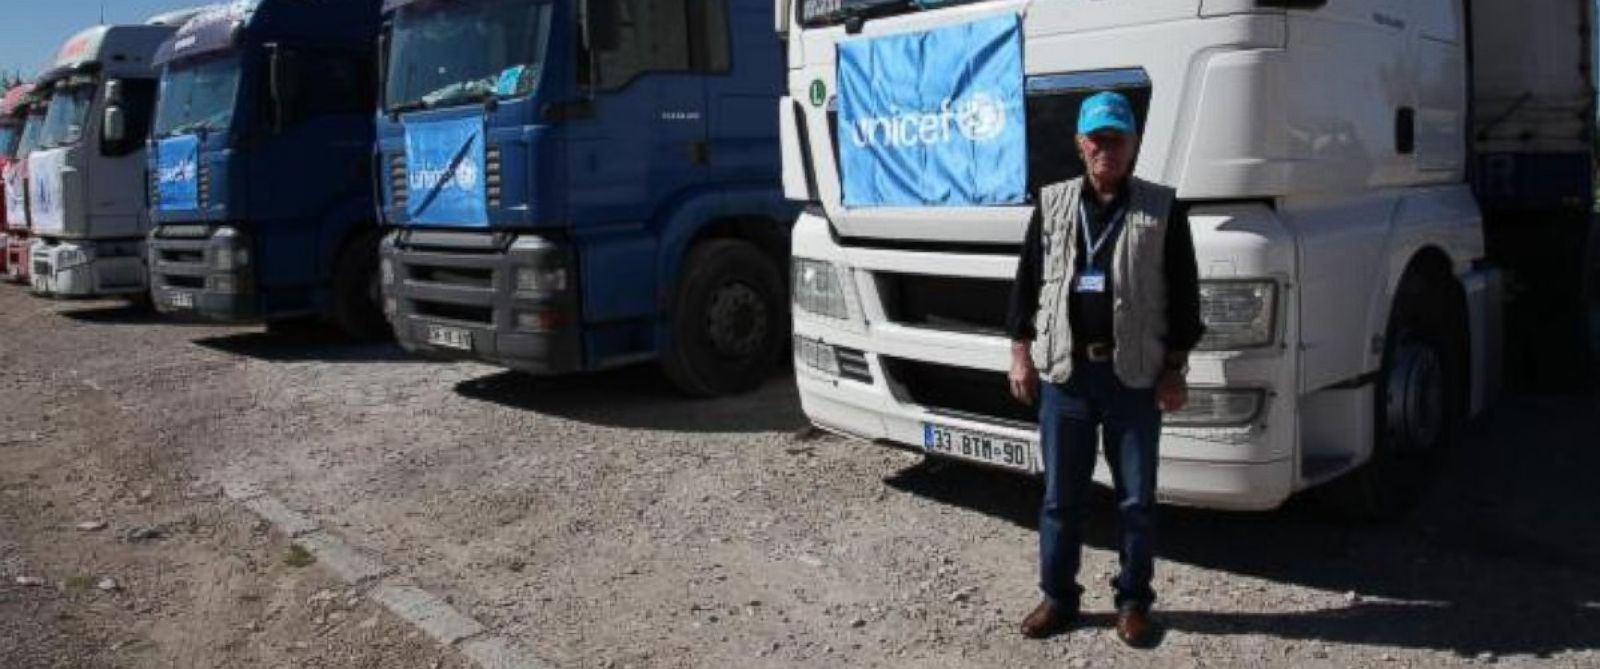 PHOTO: UNICEF trucks bring aid to Syria. On Mar. 20, the first U.N. aid trucks crossed into Syria from the Nusaybin crossing on the Turkish border, after the Syrian government opened the crossing to allow aid to reach Qamishli.